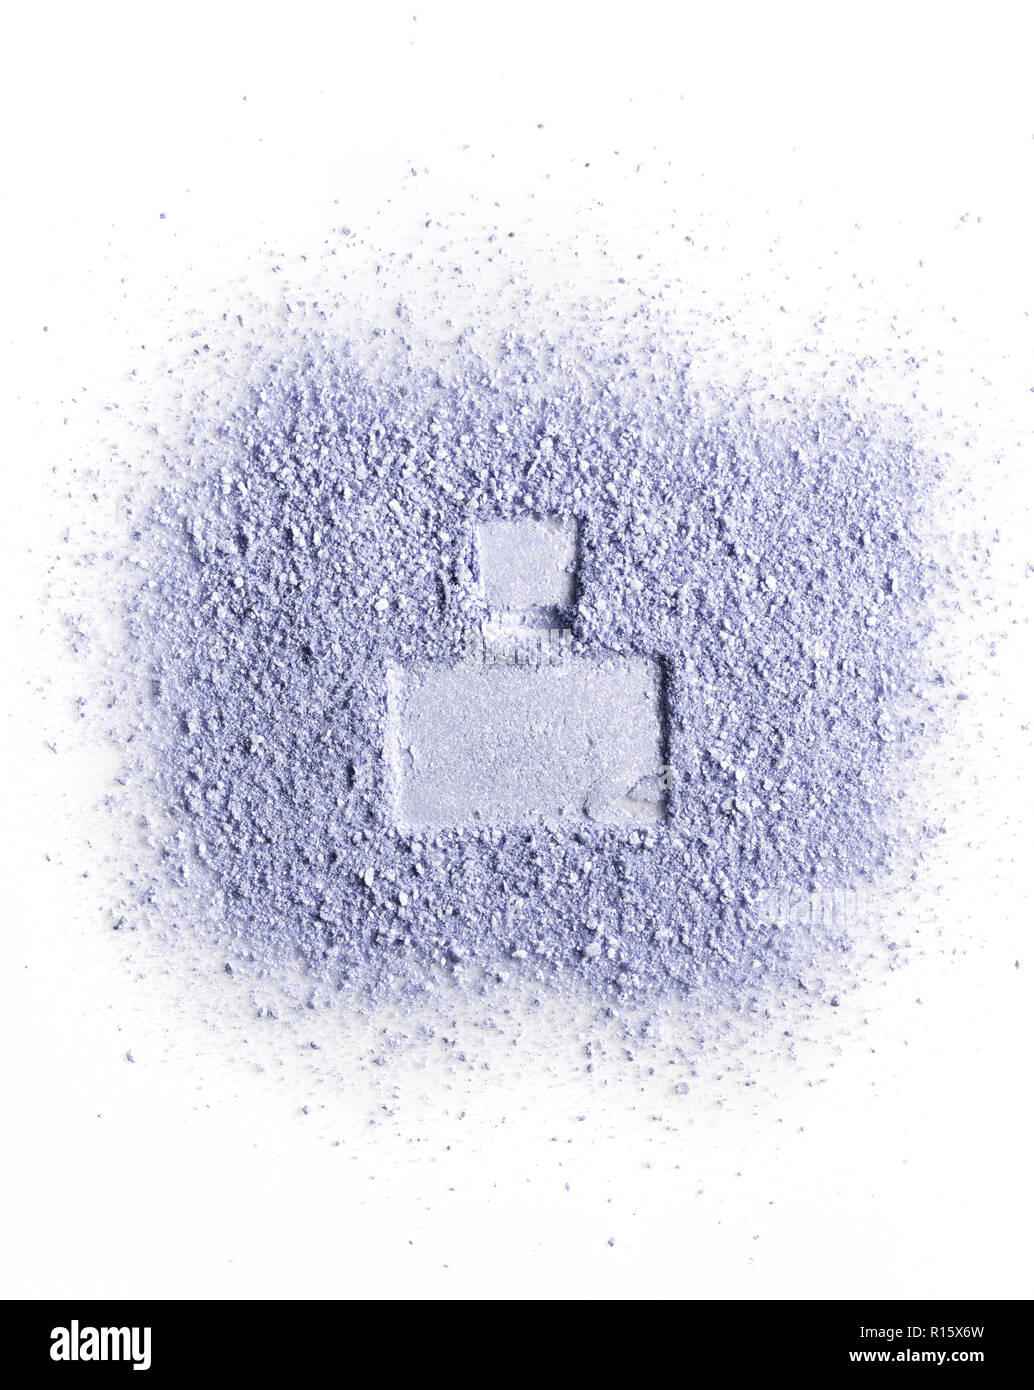 Imprint of perfume bottle on violet face powder. Isolated on a white background. - Stock Image